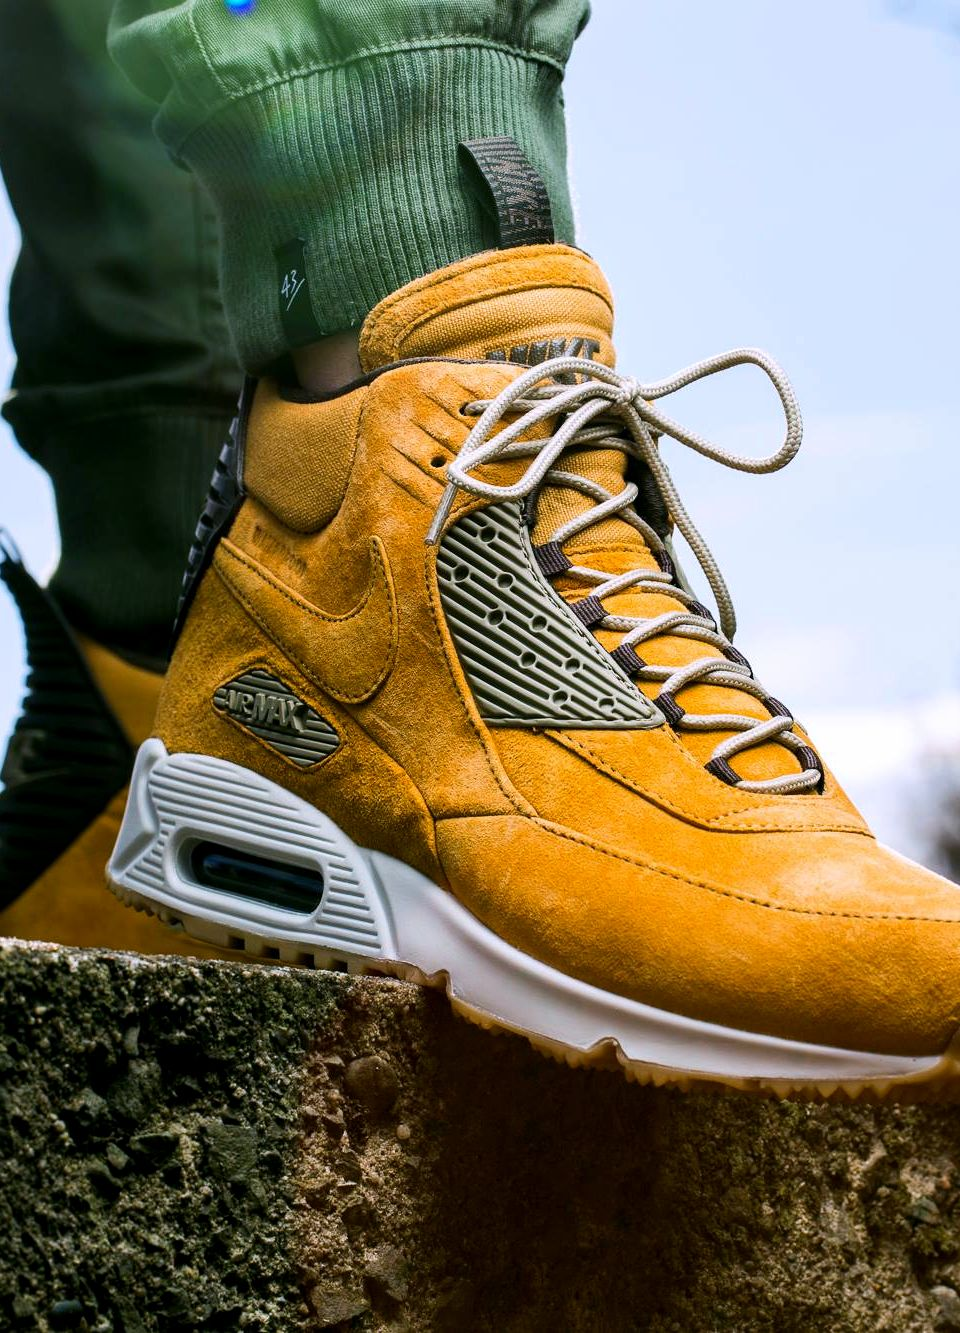 quality design baa94 e7cd1 Nike Air Max 90 Sneakerboot Winter  Bronze  (via Kicks-daily.com)